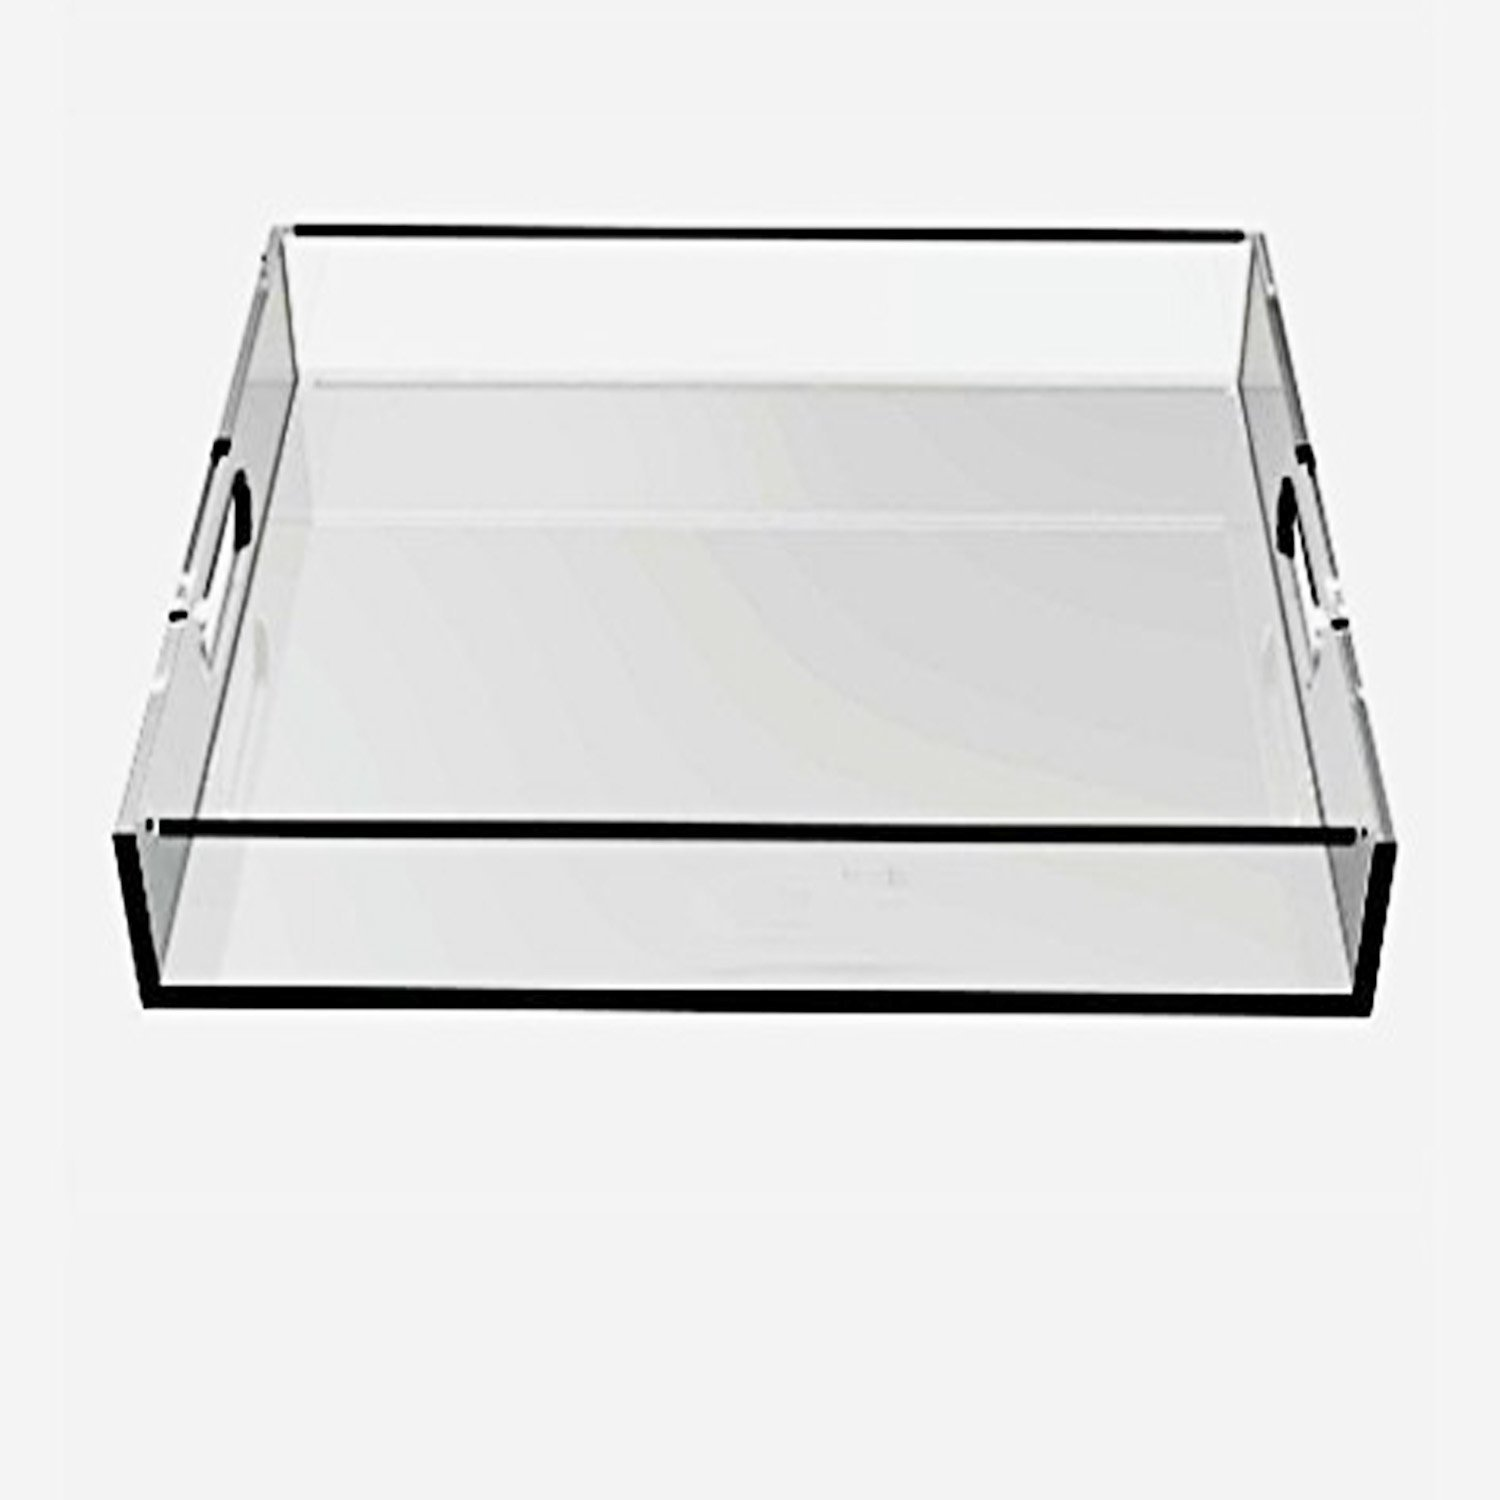 A4 Heavy-Duty Clear Handled Acrylic Serving Tray,Lucite Fruit Trays with Handler for Bar,Hotel,Restaurant,Cafe (W8.26xL11.7''xH1.5''))